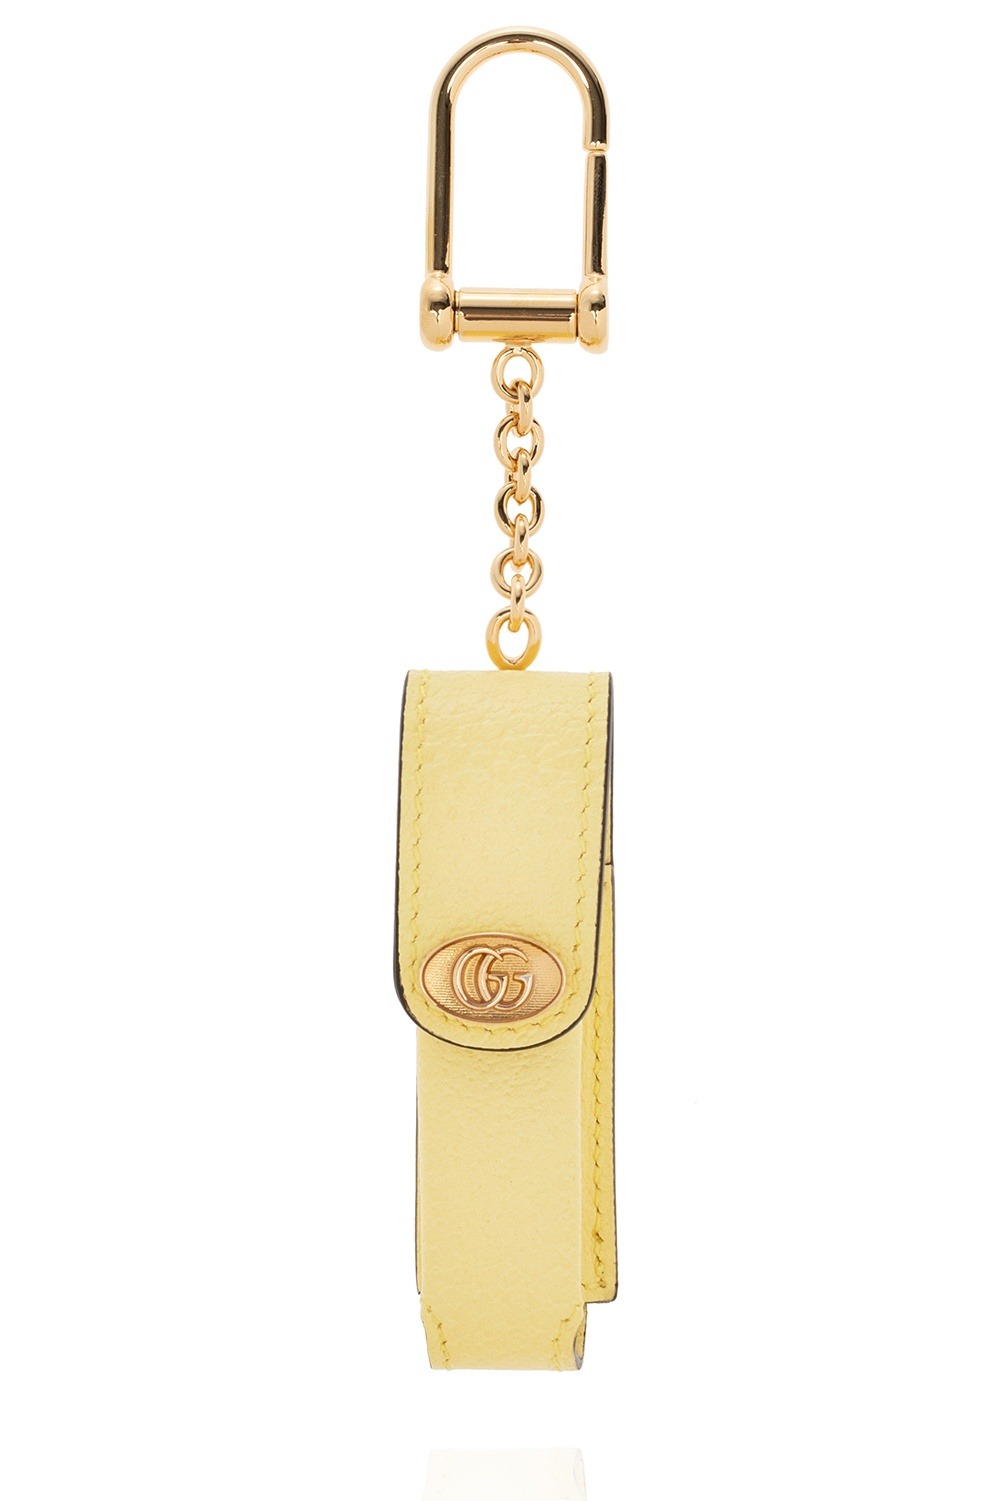 Gucci Keychain with lipstick case